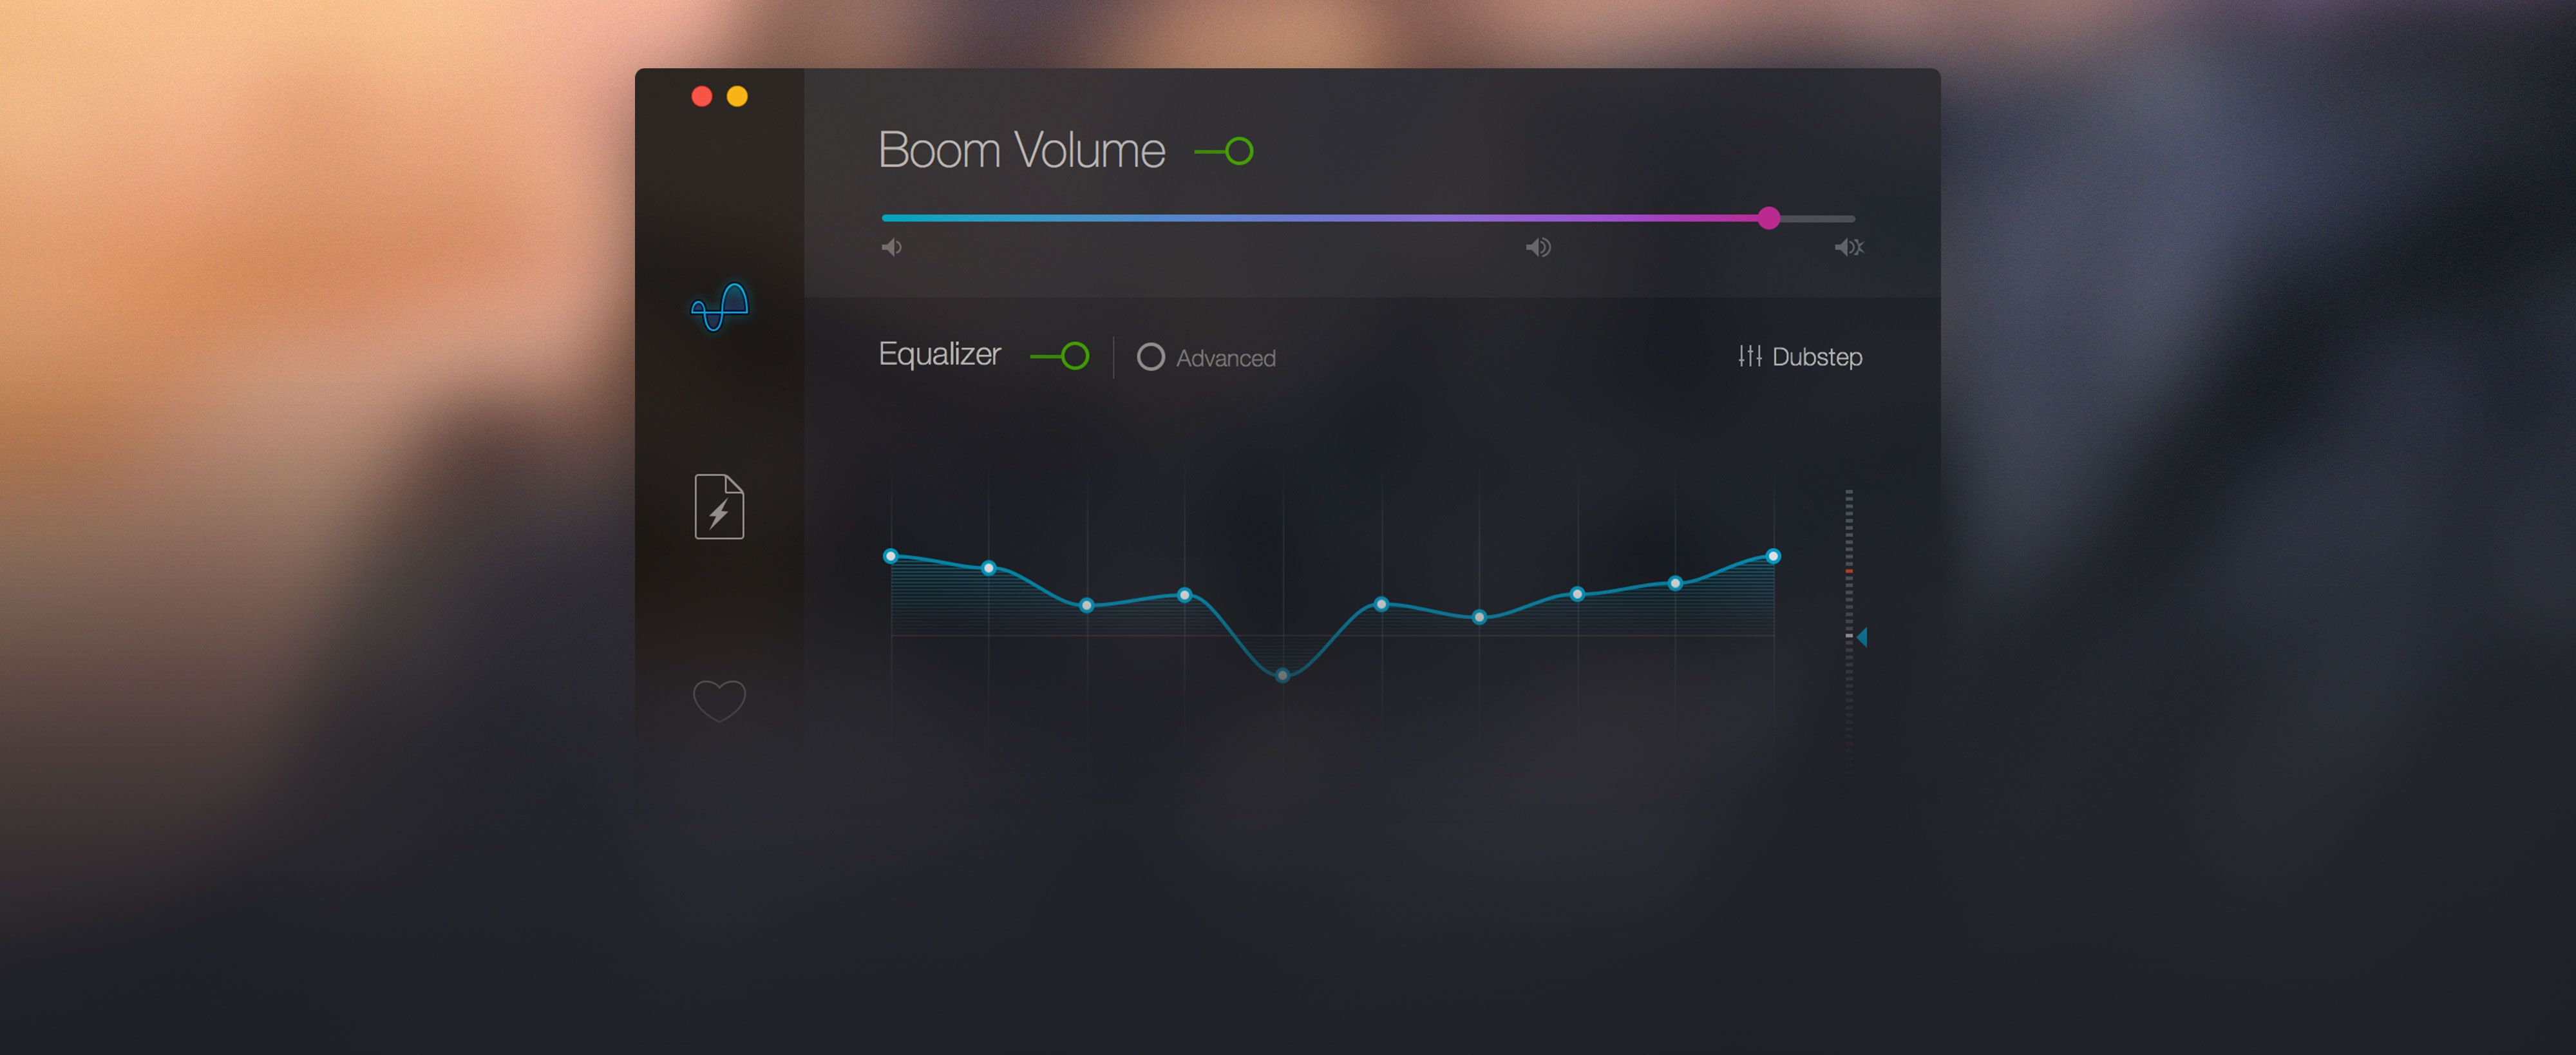 Boom 2 Mac volume booster interface